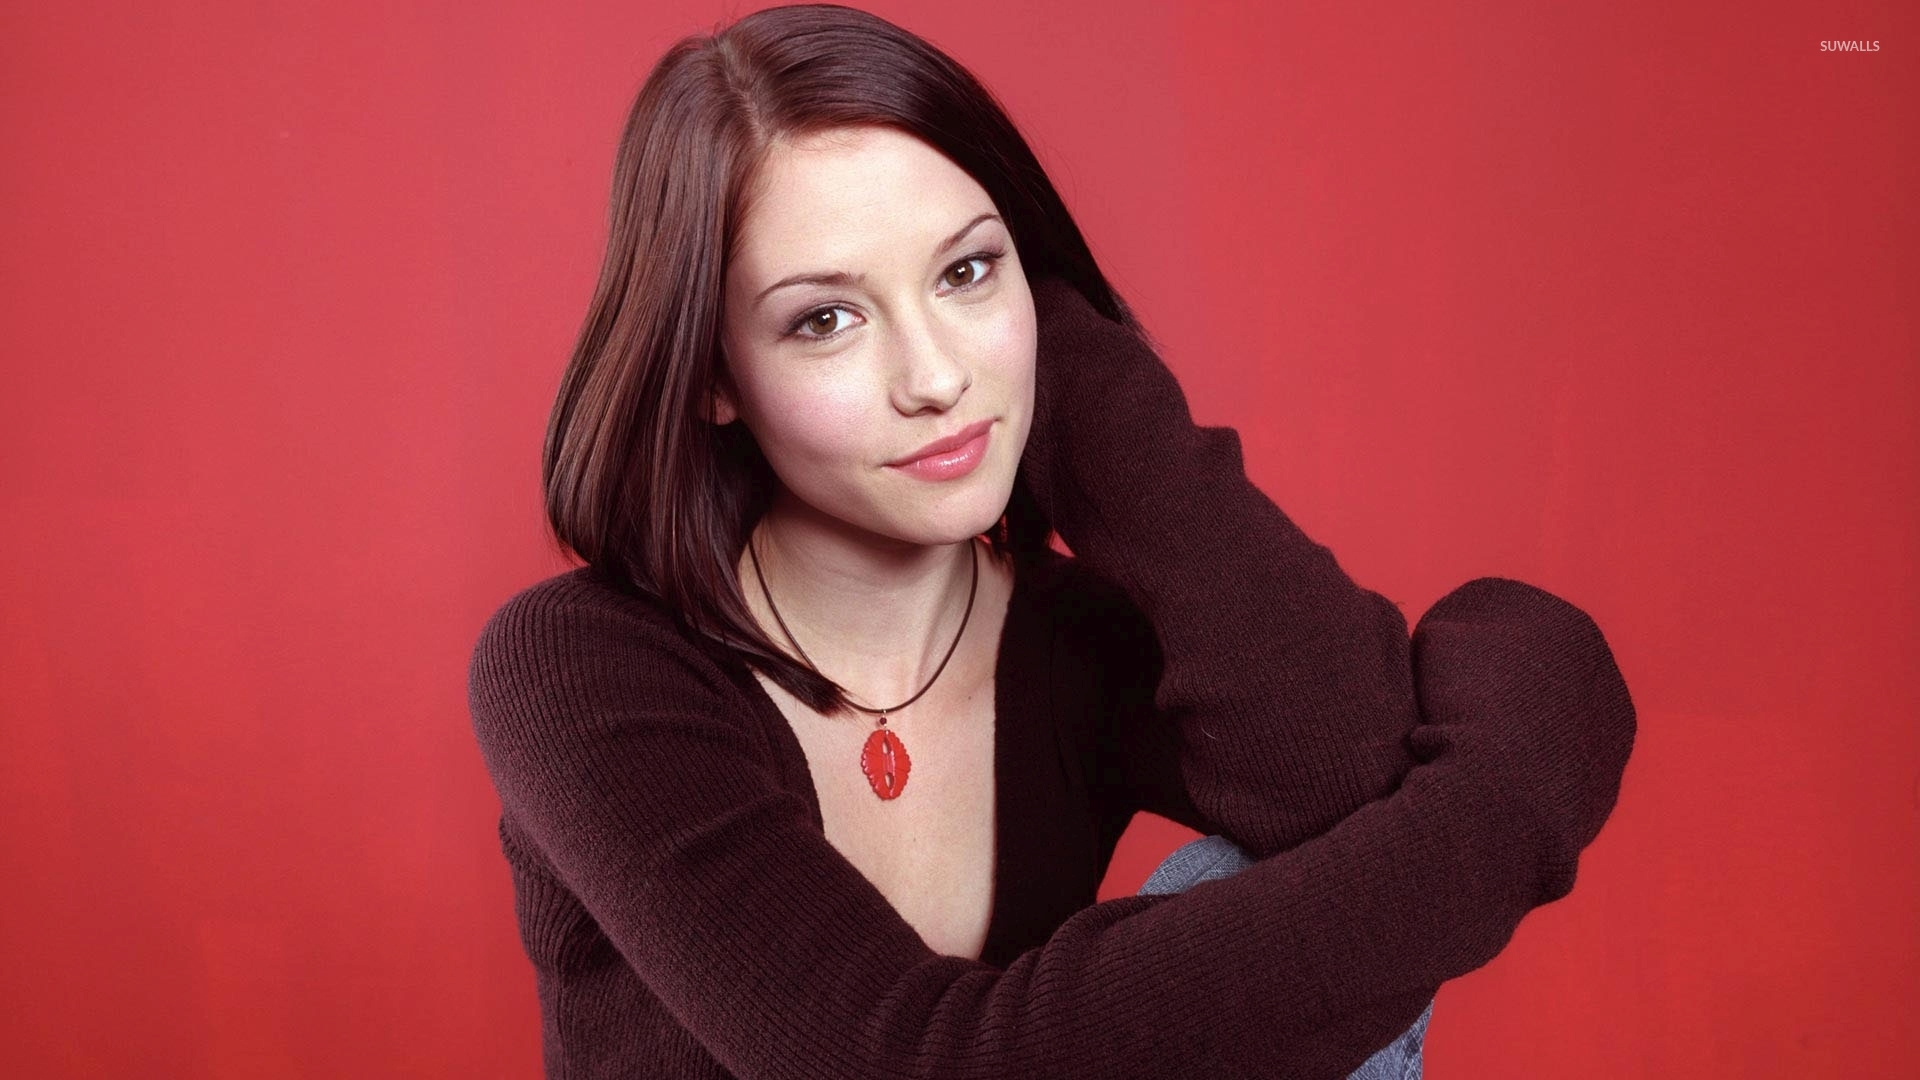 chyler-leigh-wallpapers-26562-1614472